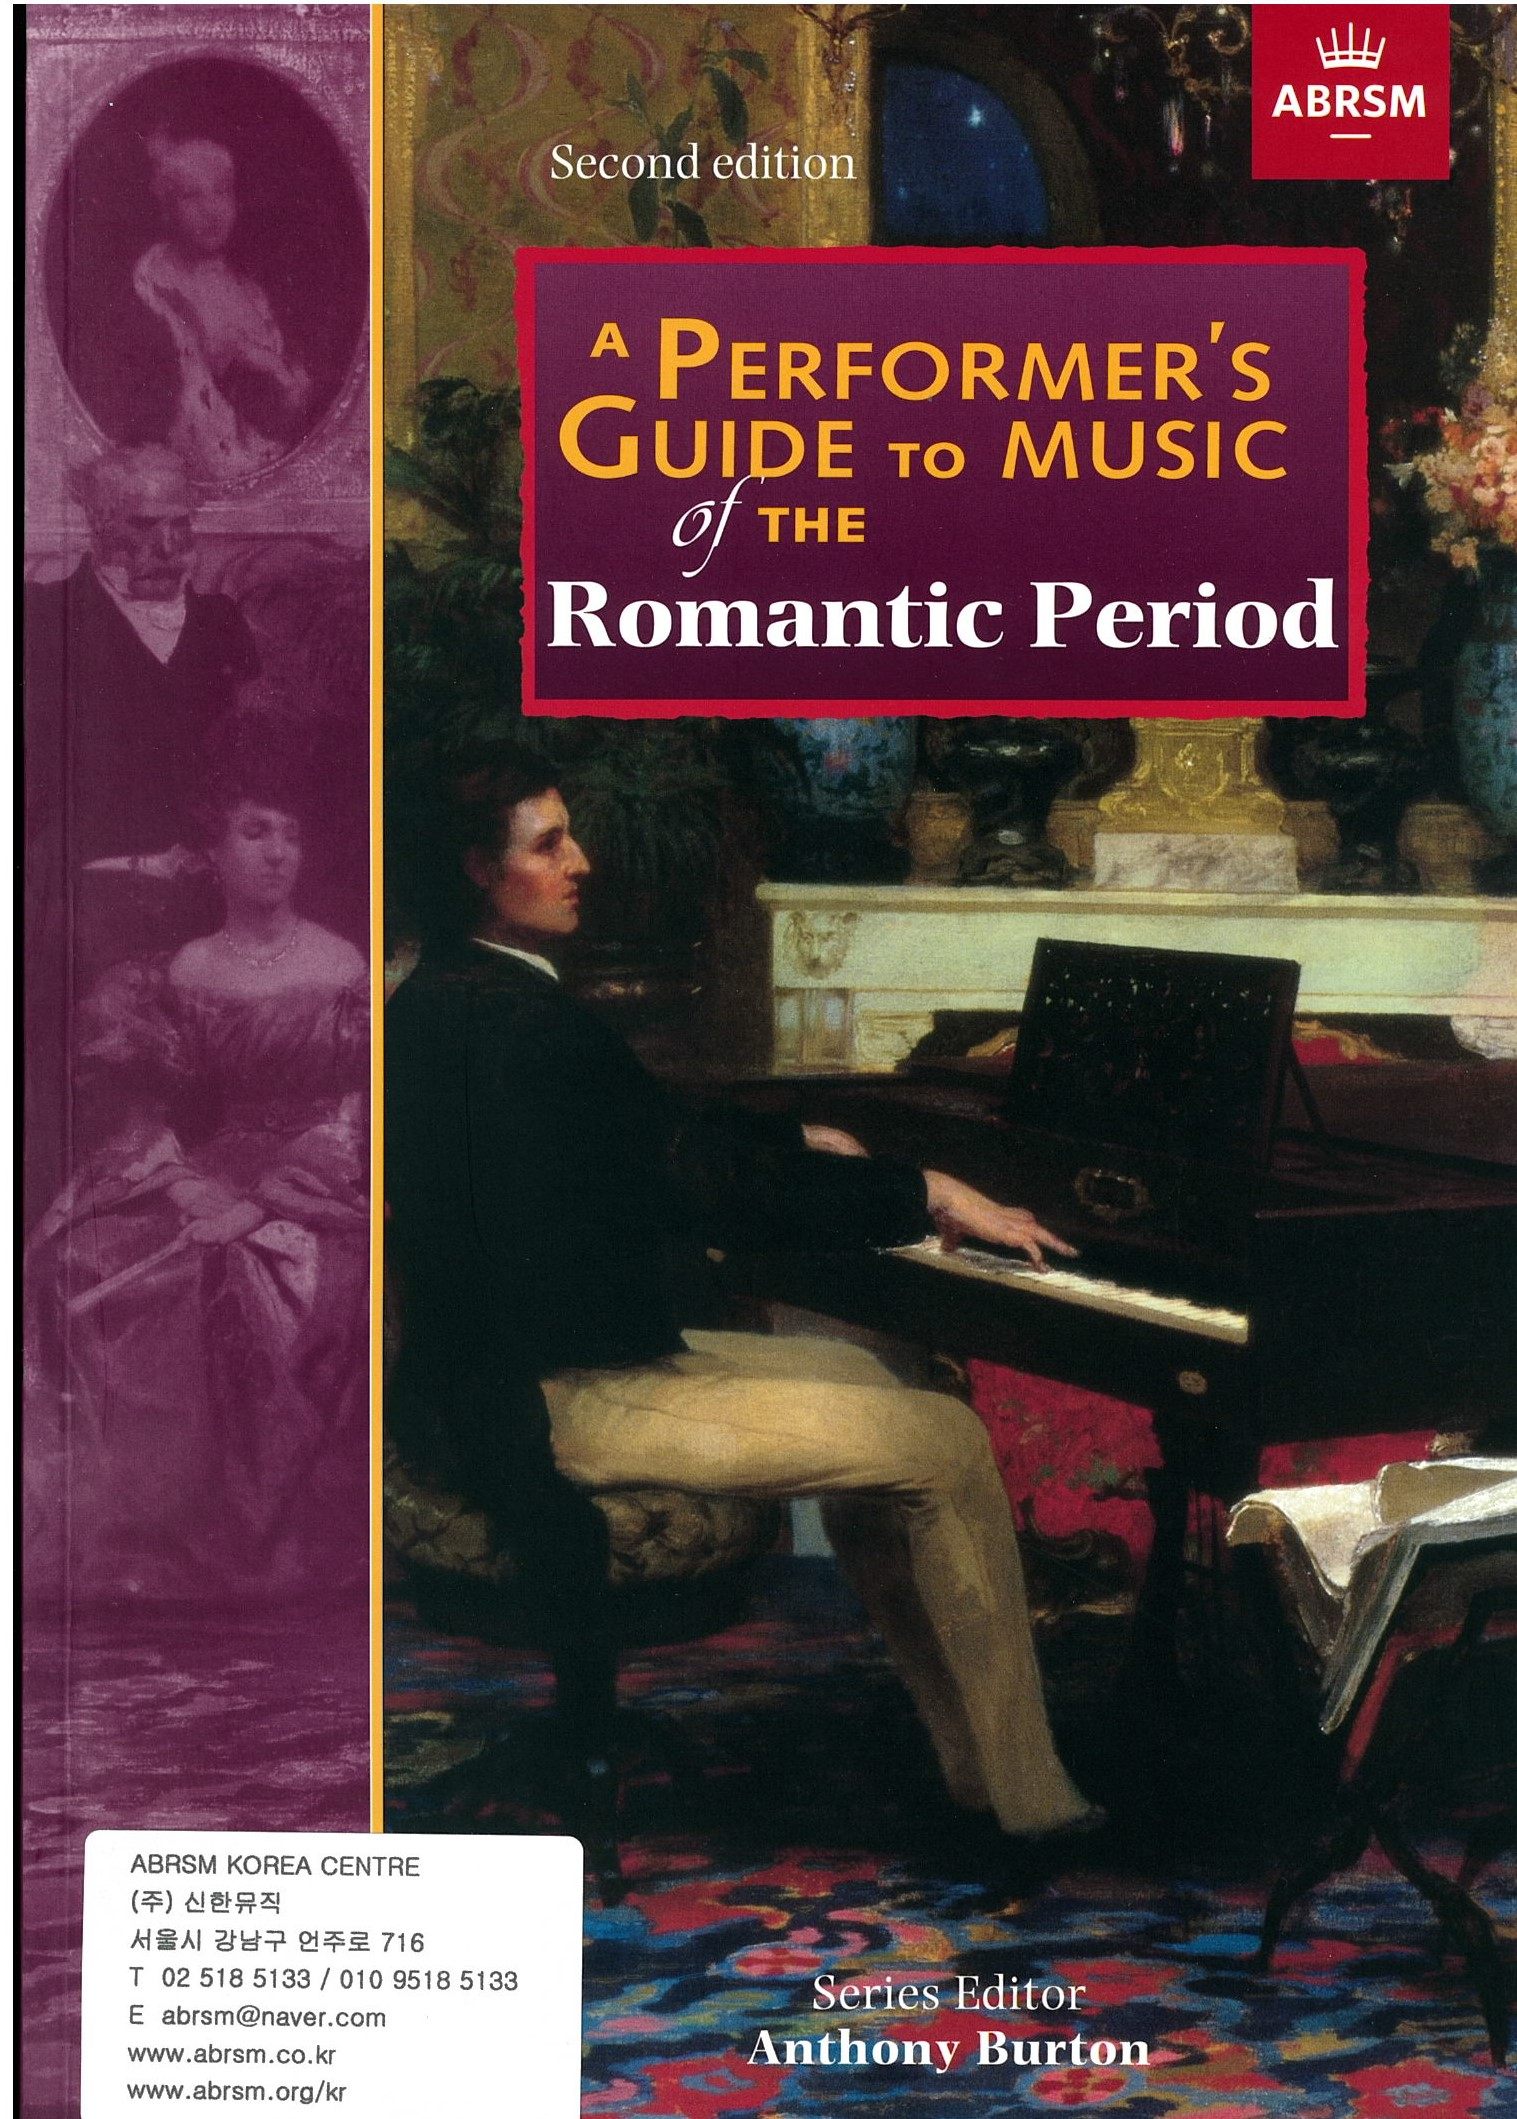 A Performer's Guide to Music of the Romantic Period (Second edition) without CD